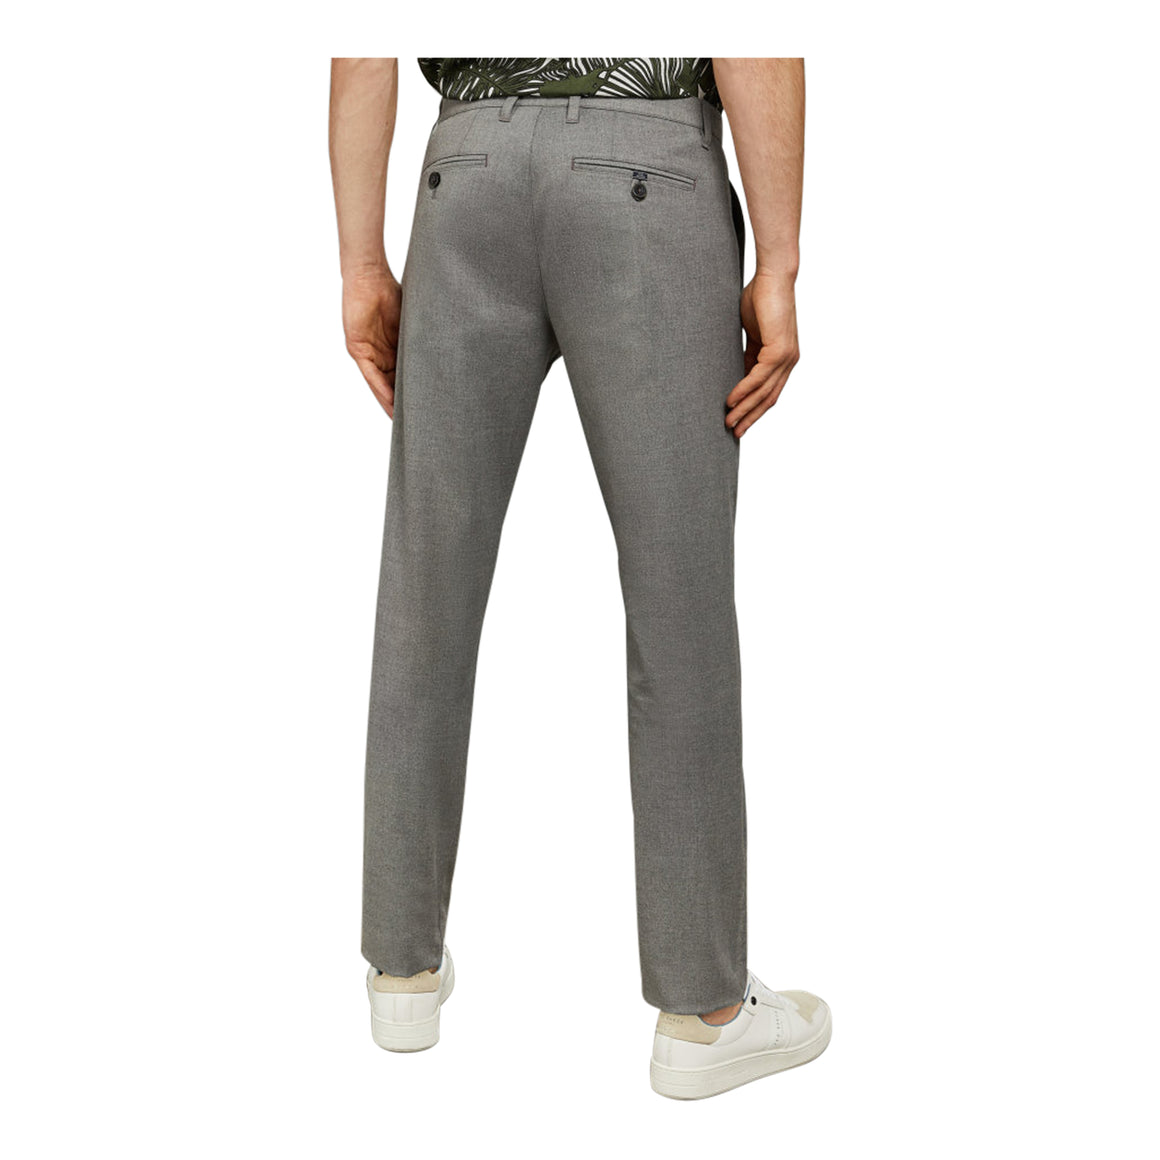 SEYII Slim Fit Trousers for Men in Grey